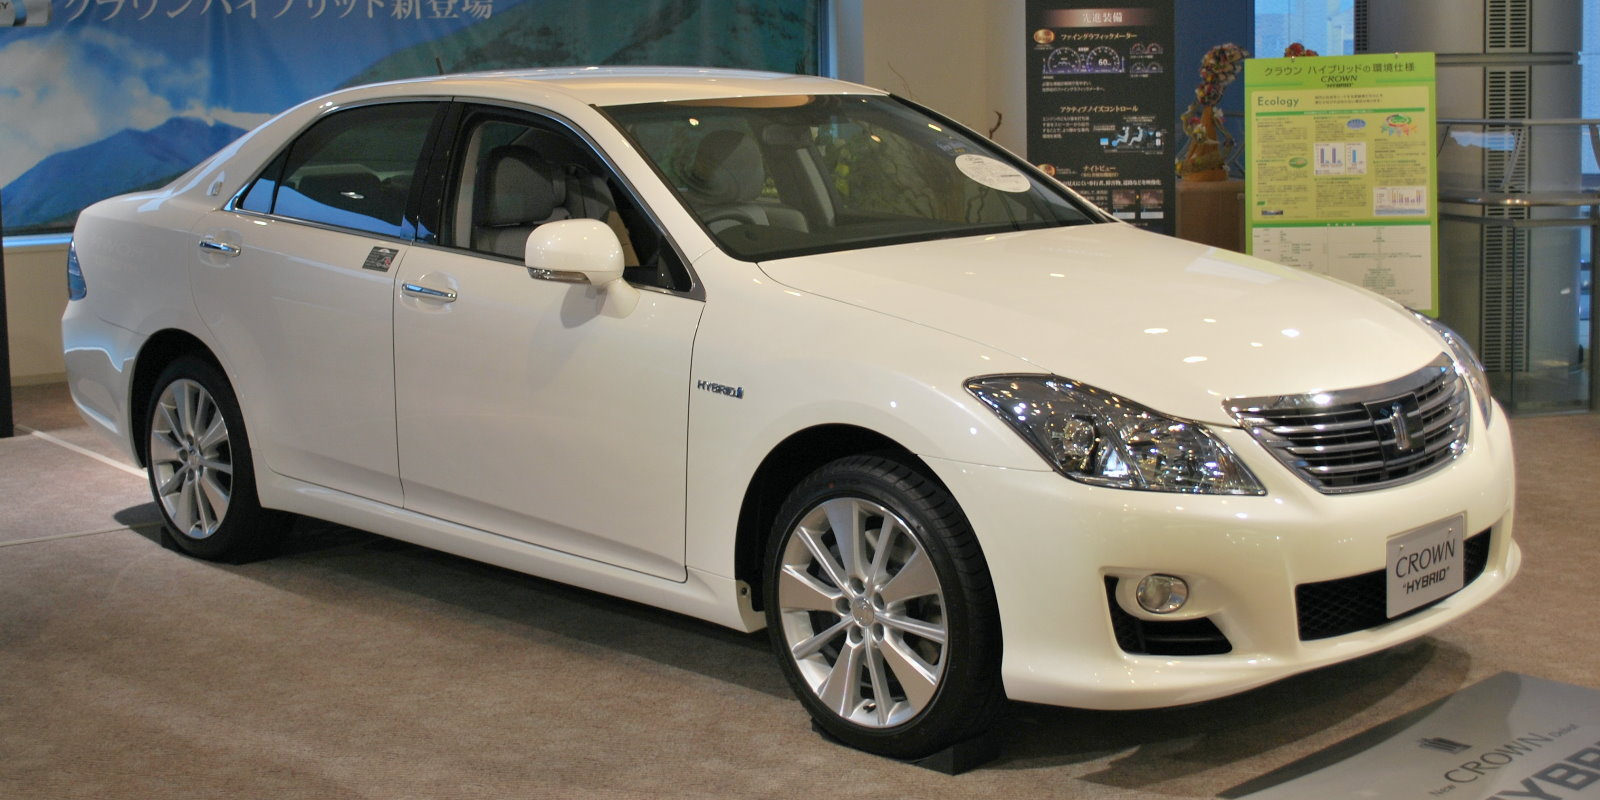 Toyota Crown #2